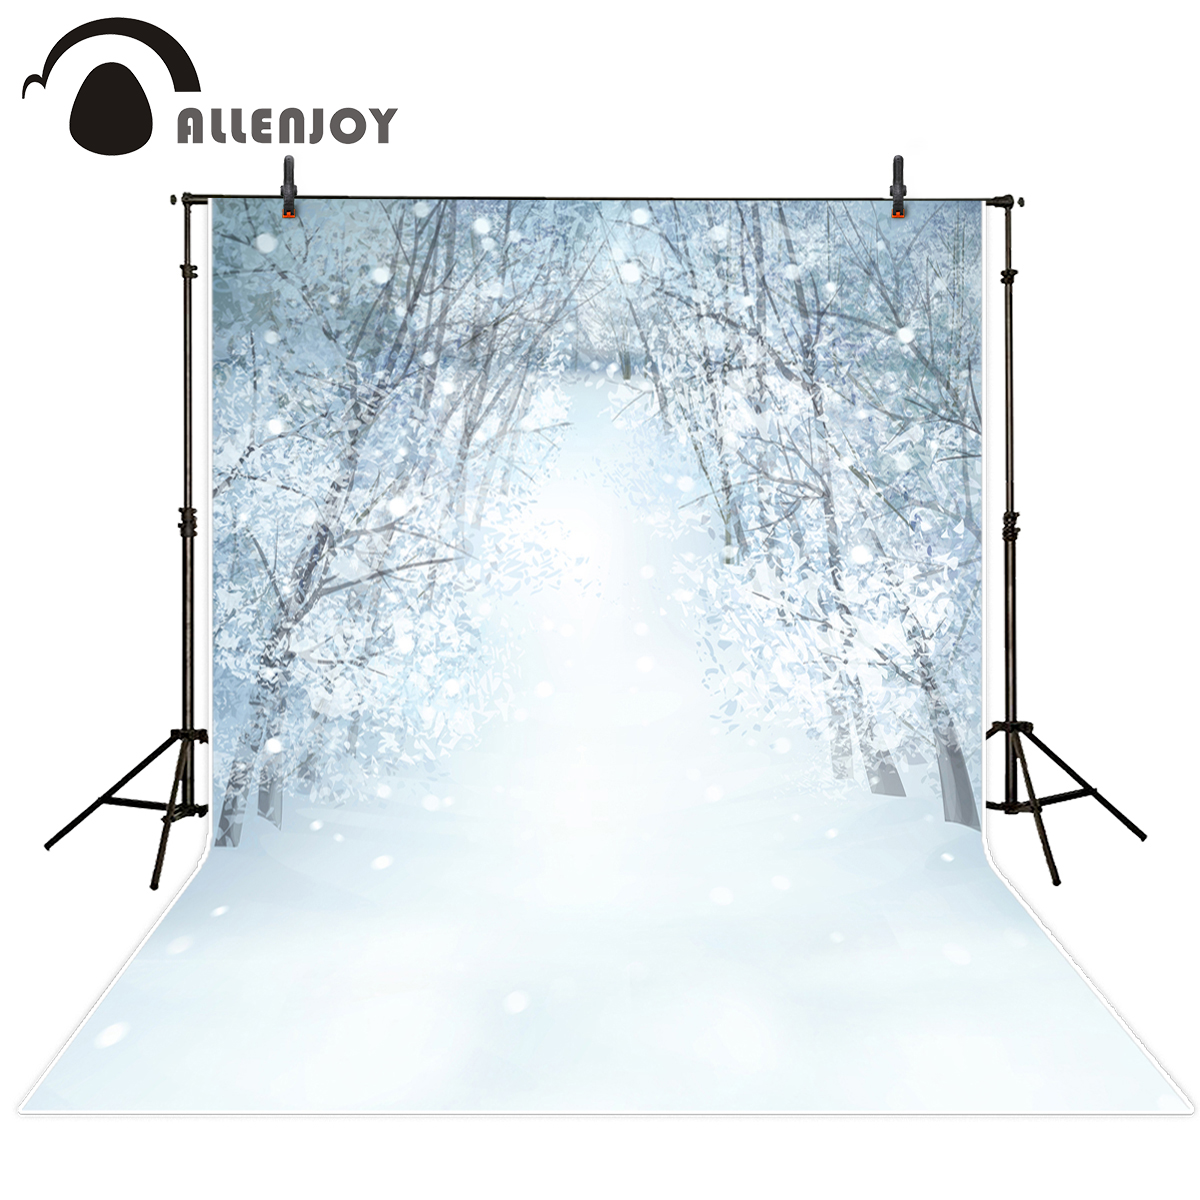 Allenjoy photography background snow forest Bokeh Winter Christmas theme backdrop professional photo background studio allenjoy photography background blue red abstract christmas background golden stars glitter bokeh lights backdrop photo studio